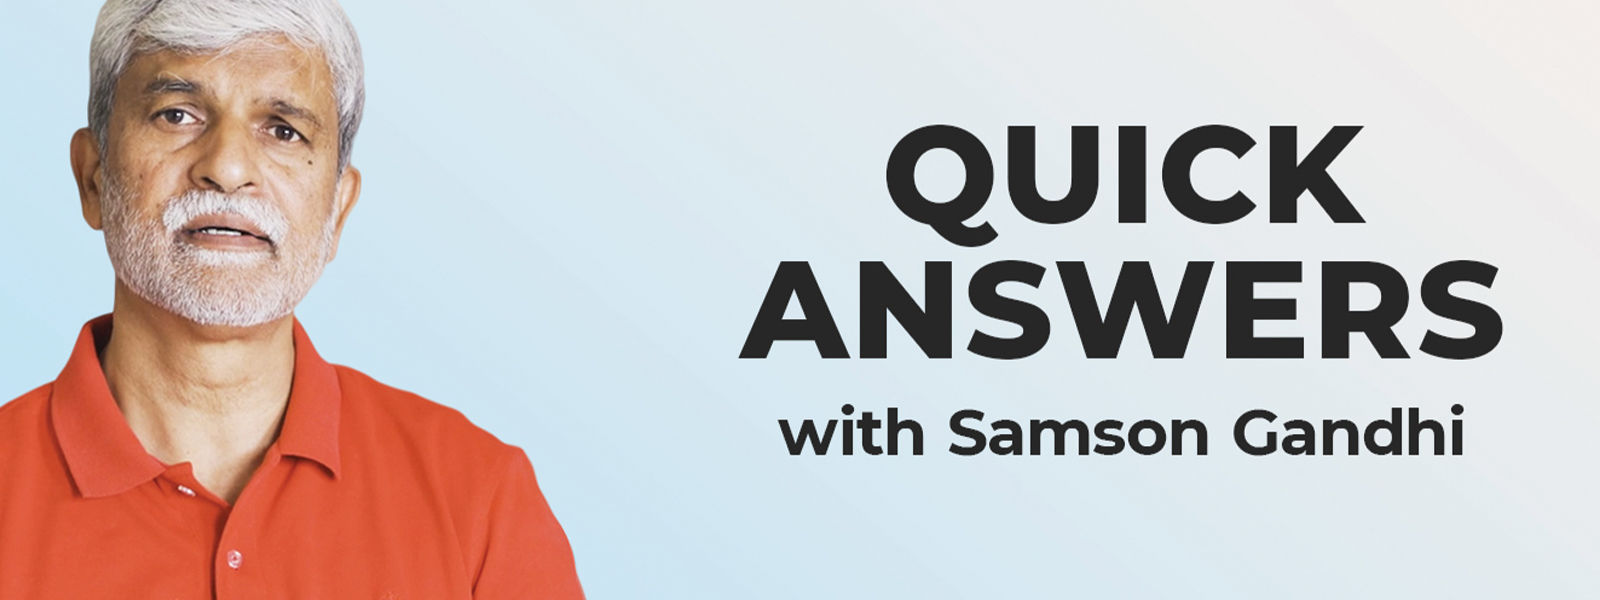 Quick Answers about Depression with Samson Gandhi